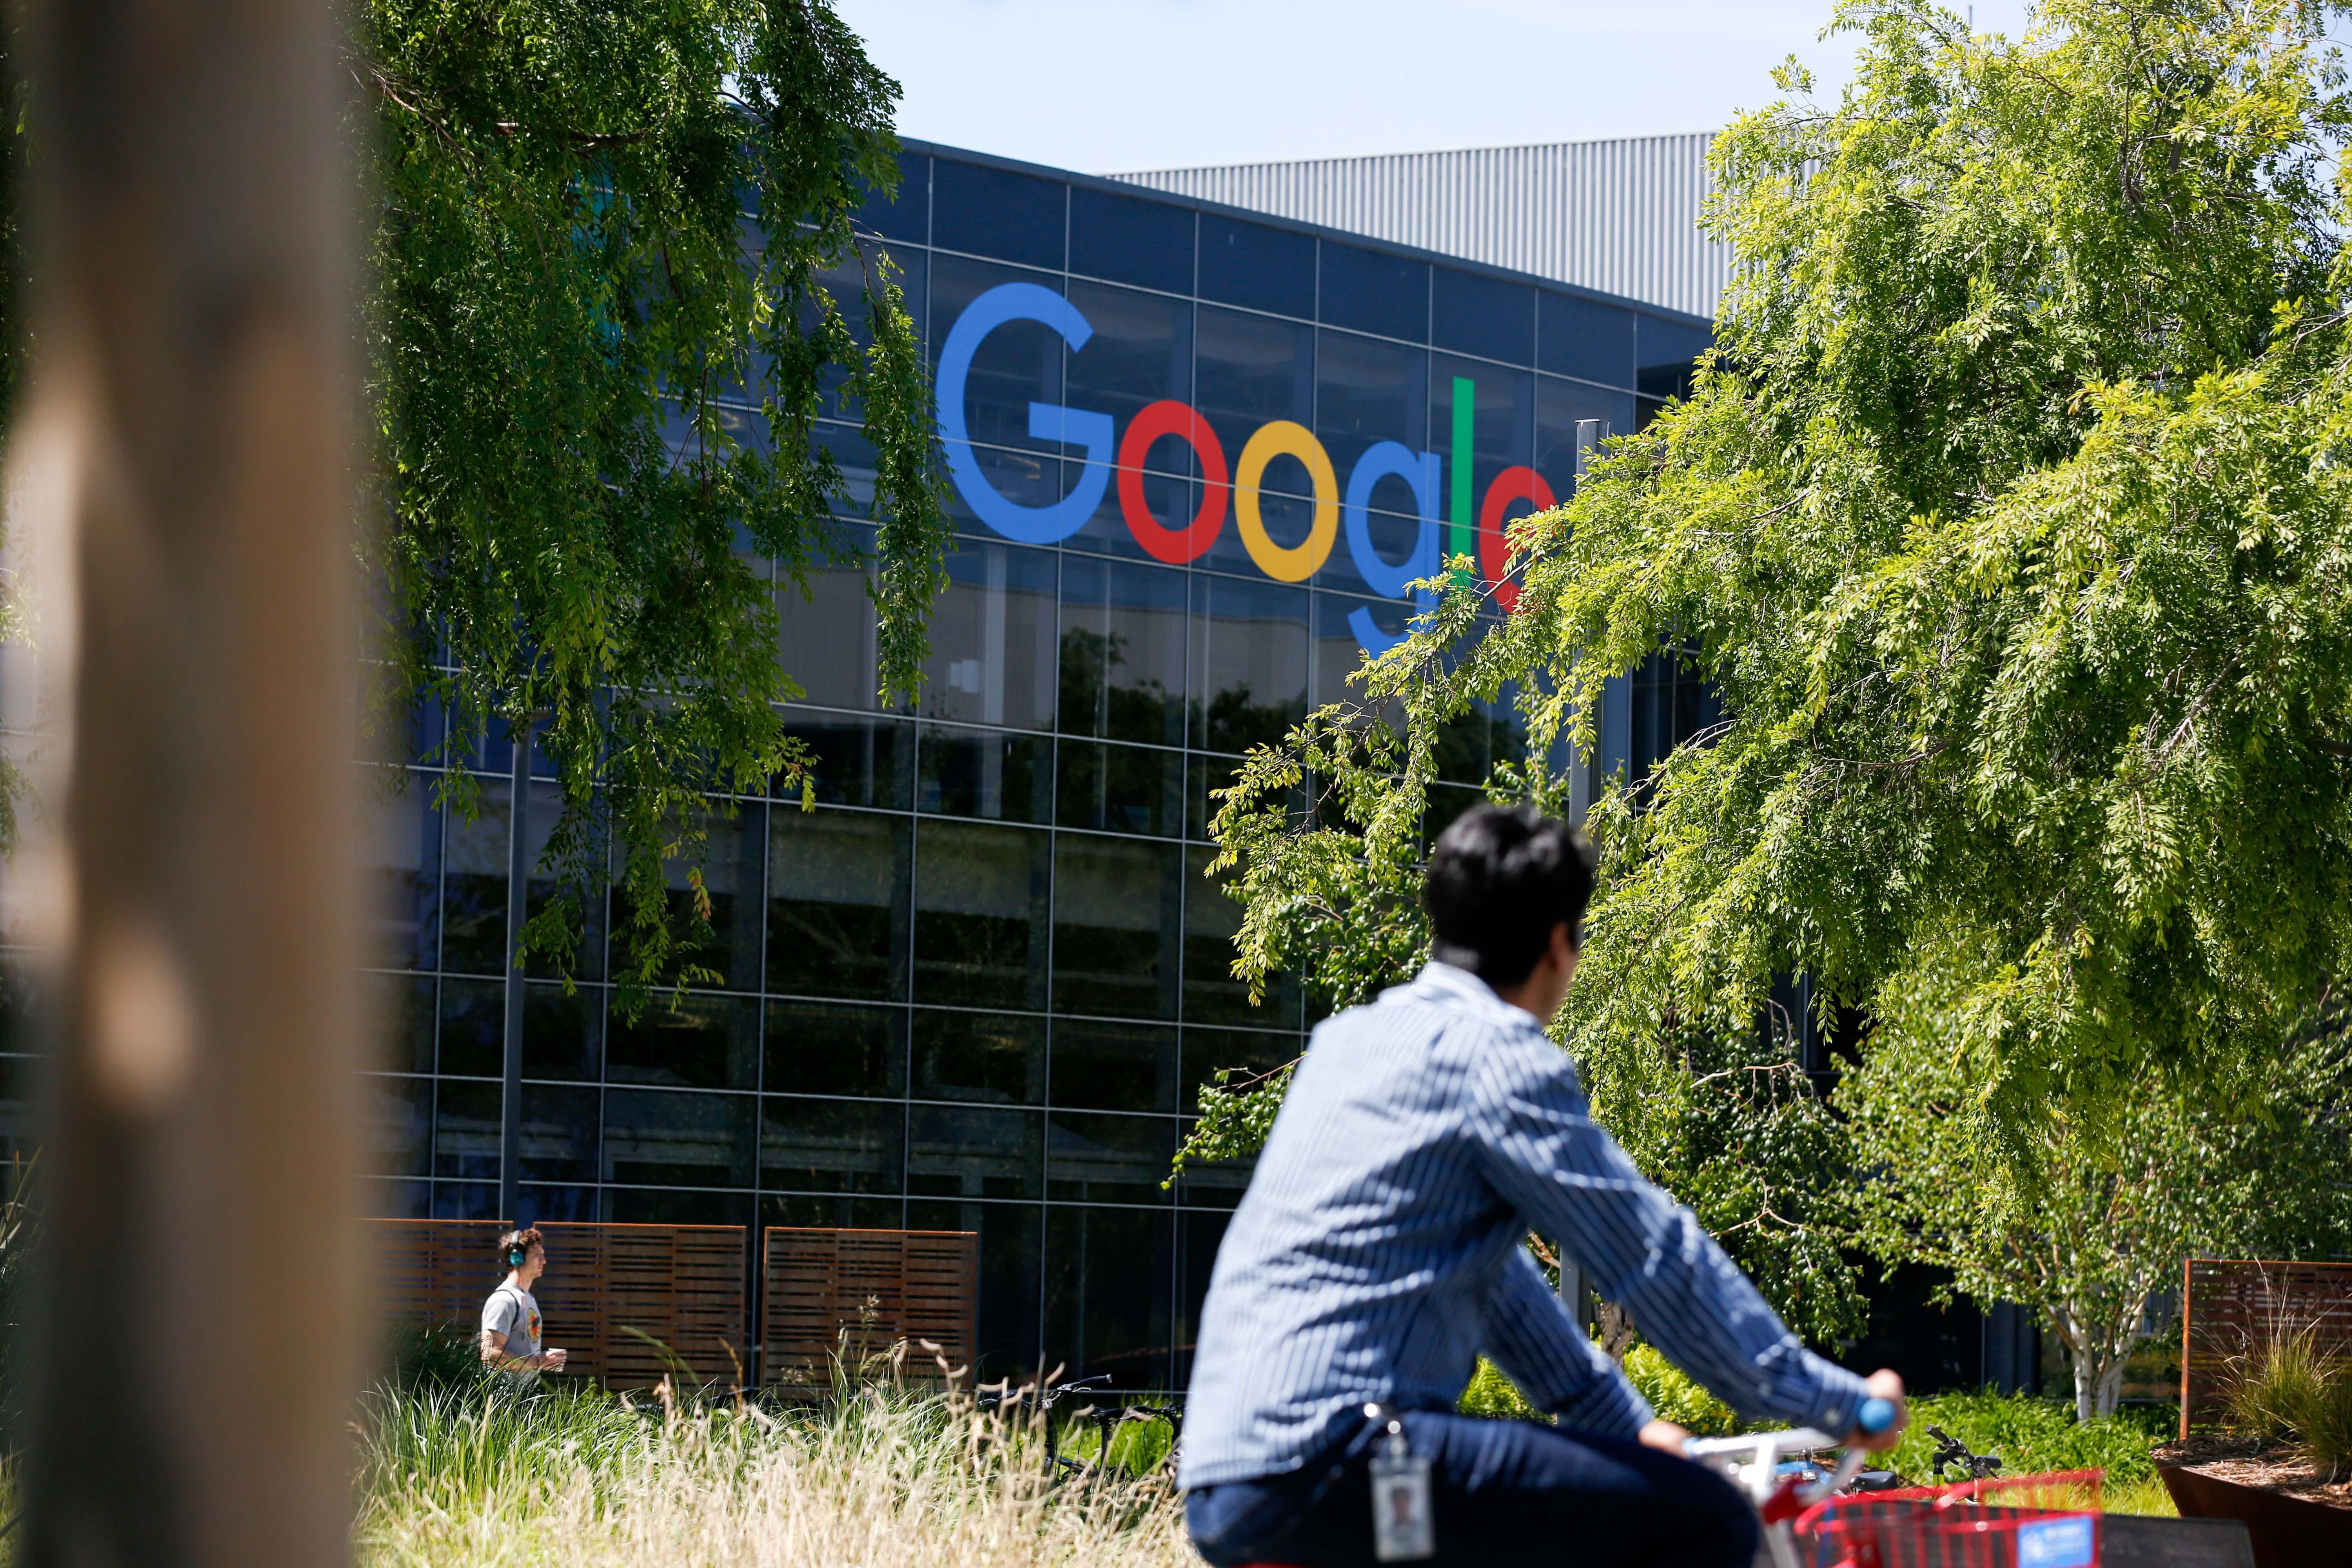 Google won't reopen its offices until September 2021 | Engadget